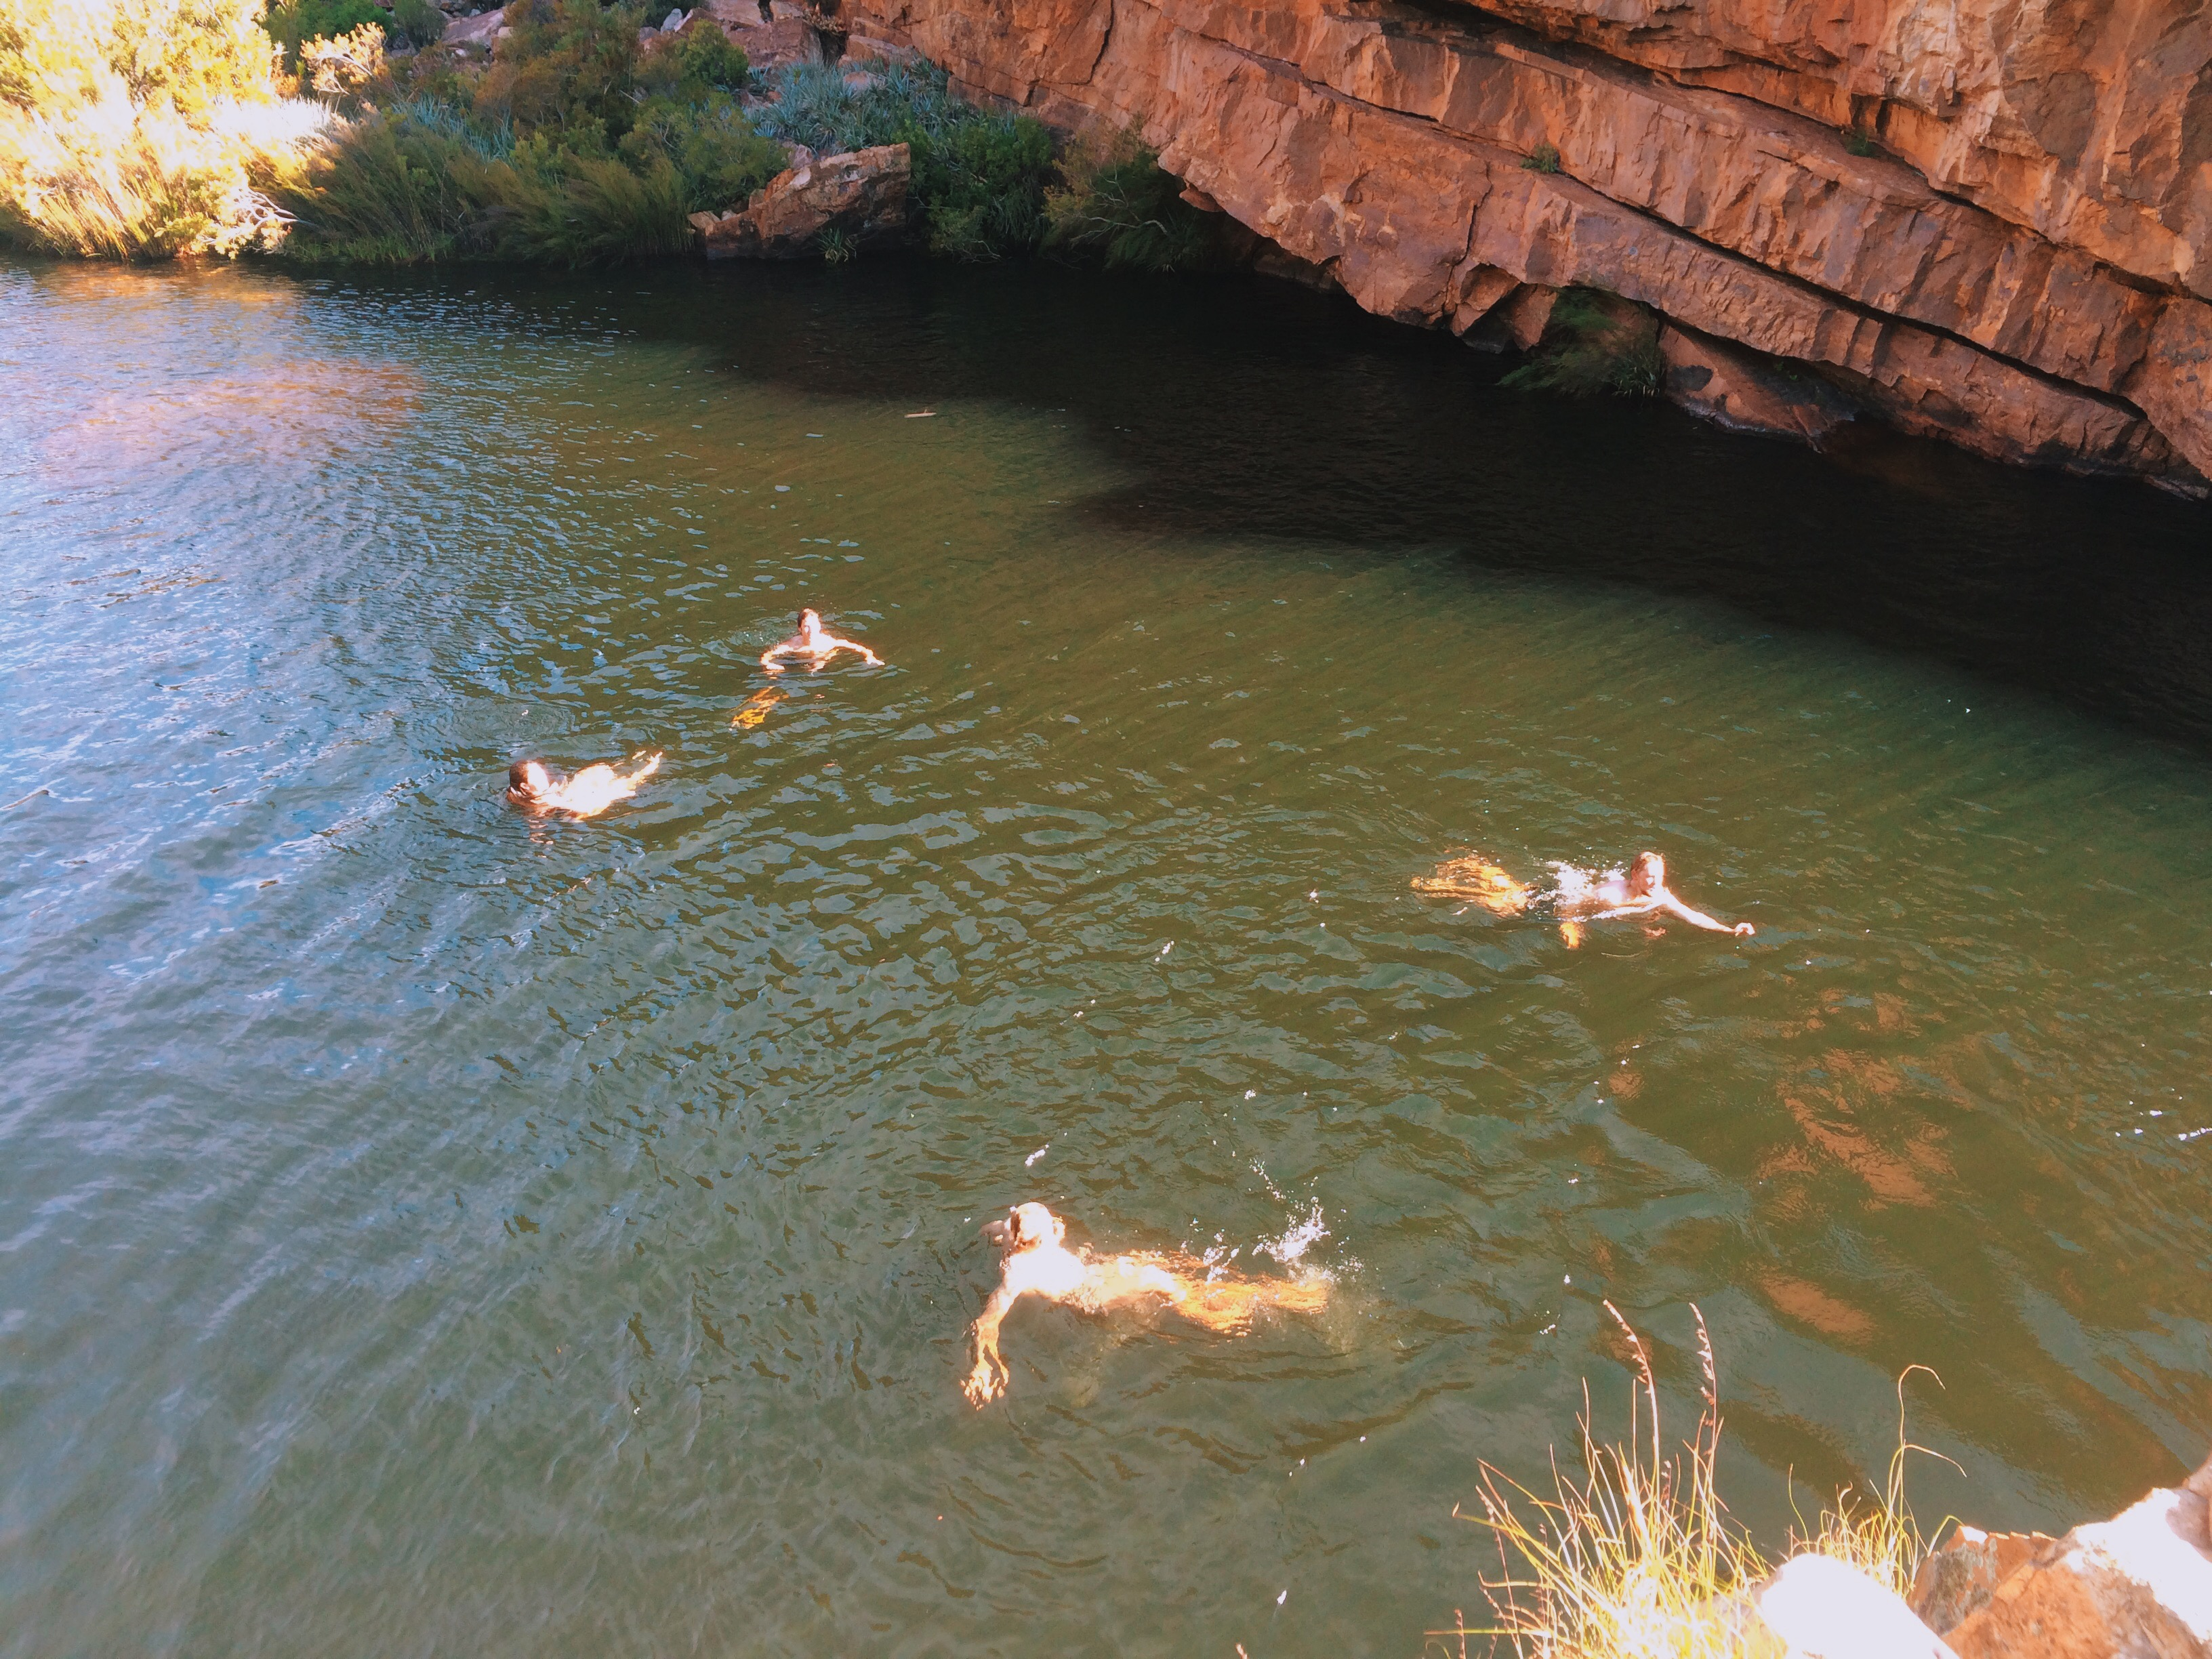 Swimmers enjoy the refreshing water after jumping from the cliffs above - Cederberg